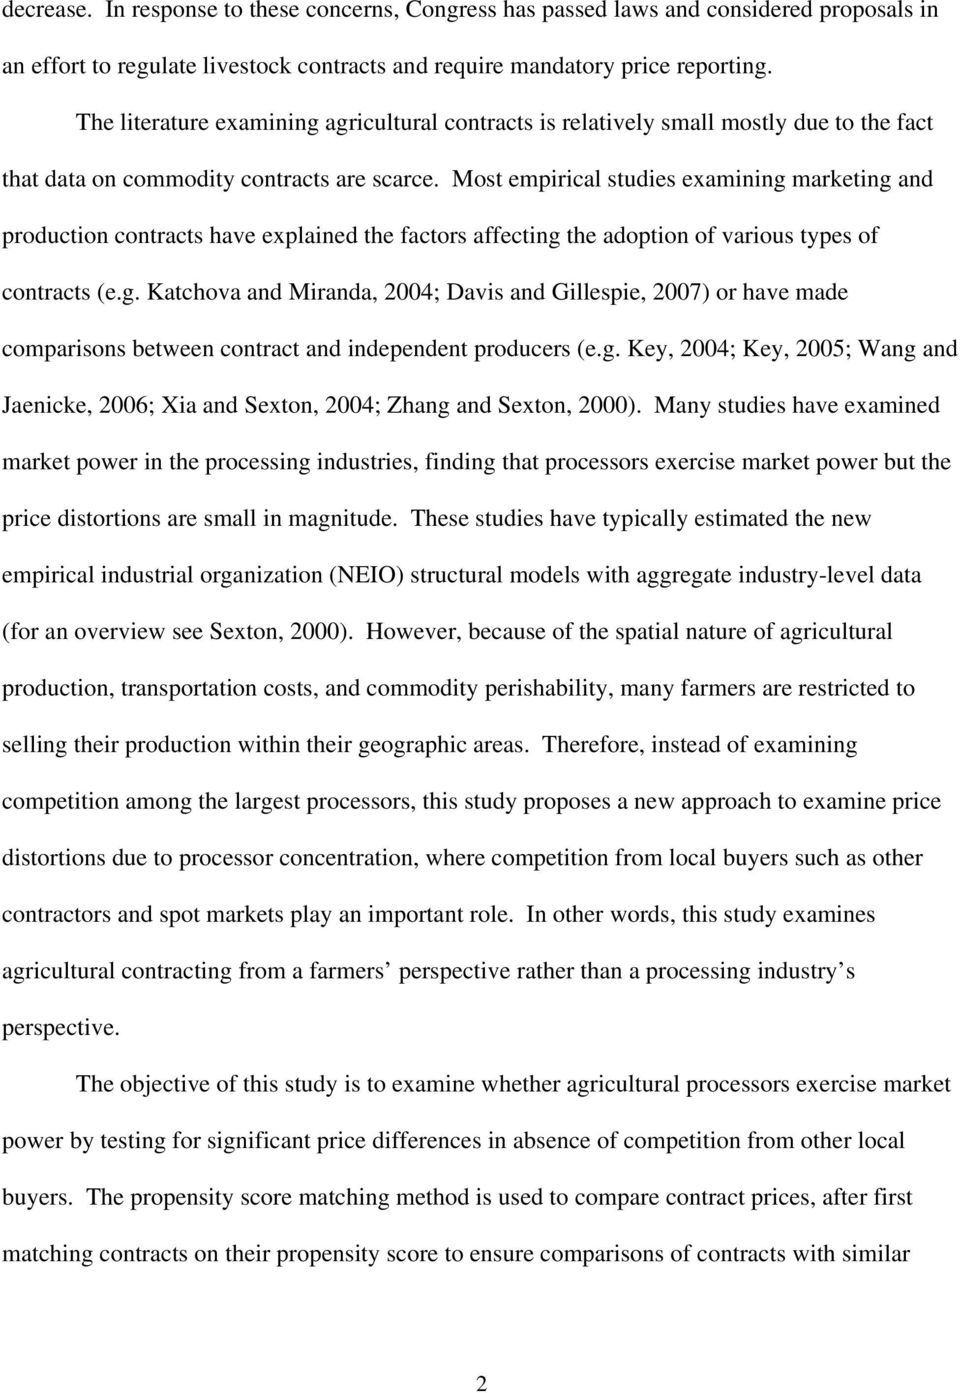 Most empirical studies examining marketing and production contracts have explained the factors affecting the adoption of various types of contracts (e.g. Katchova and Miranda, 2004; Davis and Gillespie, 2007) or have made comparisons between contract and independent producers (e.